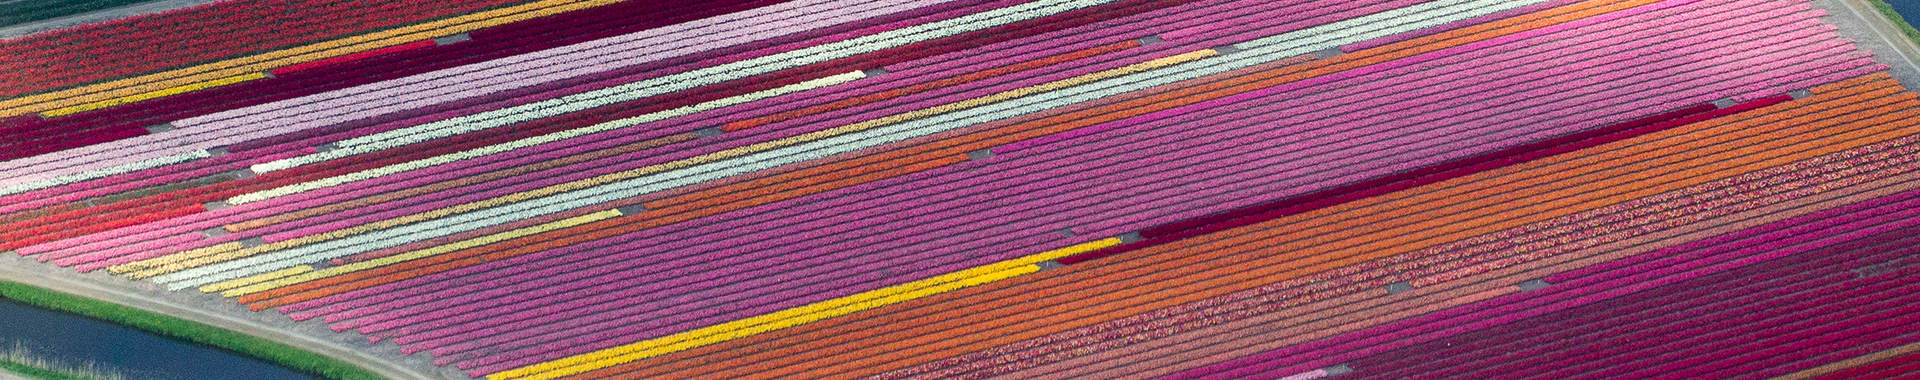 aerial photo of a flower farm